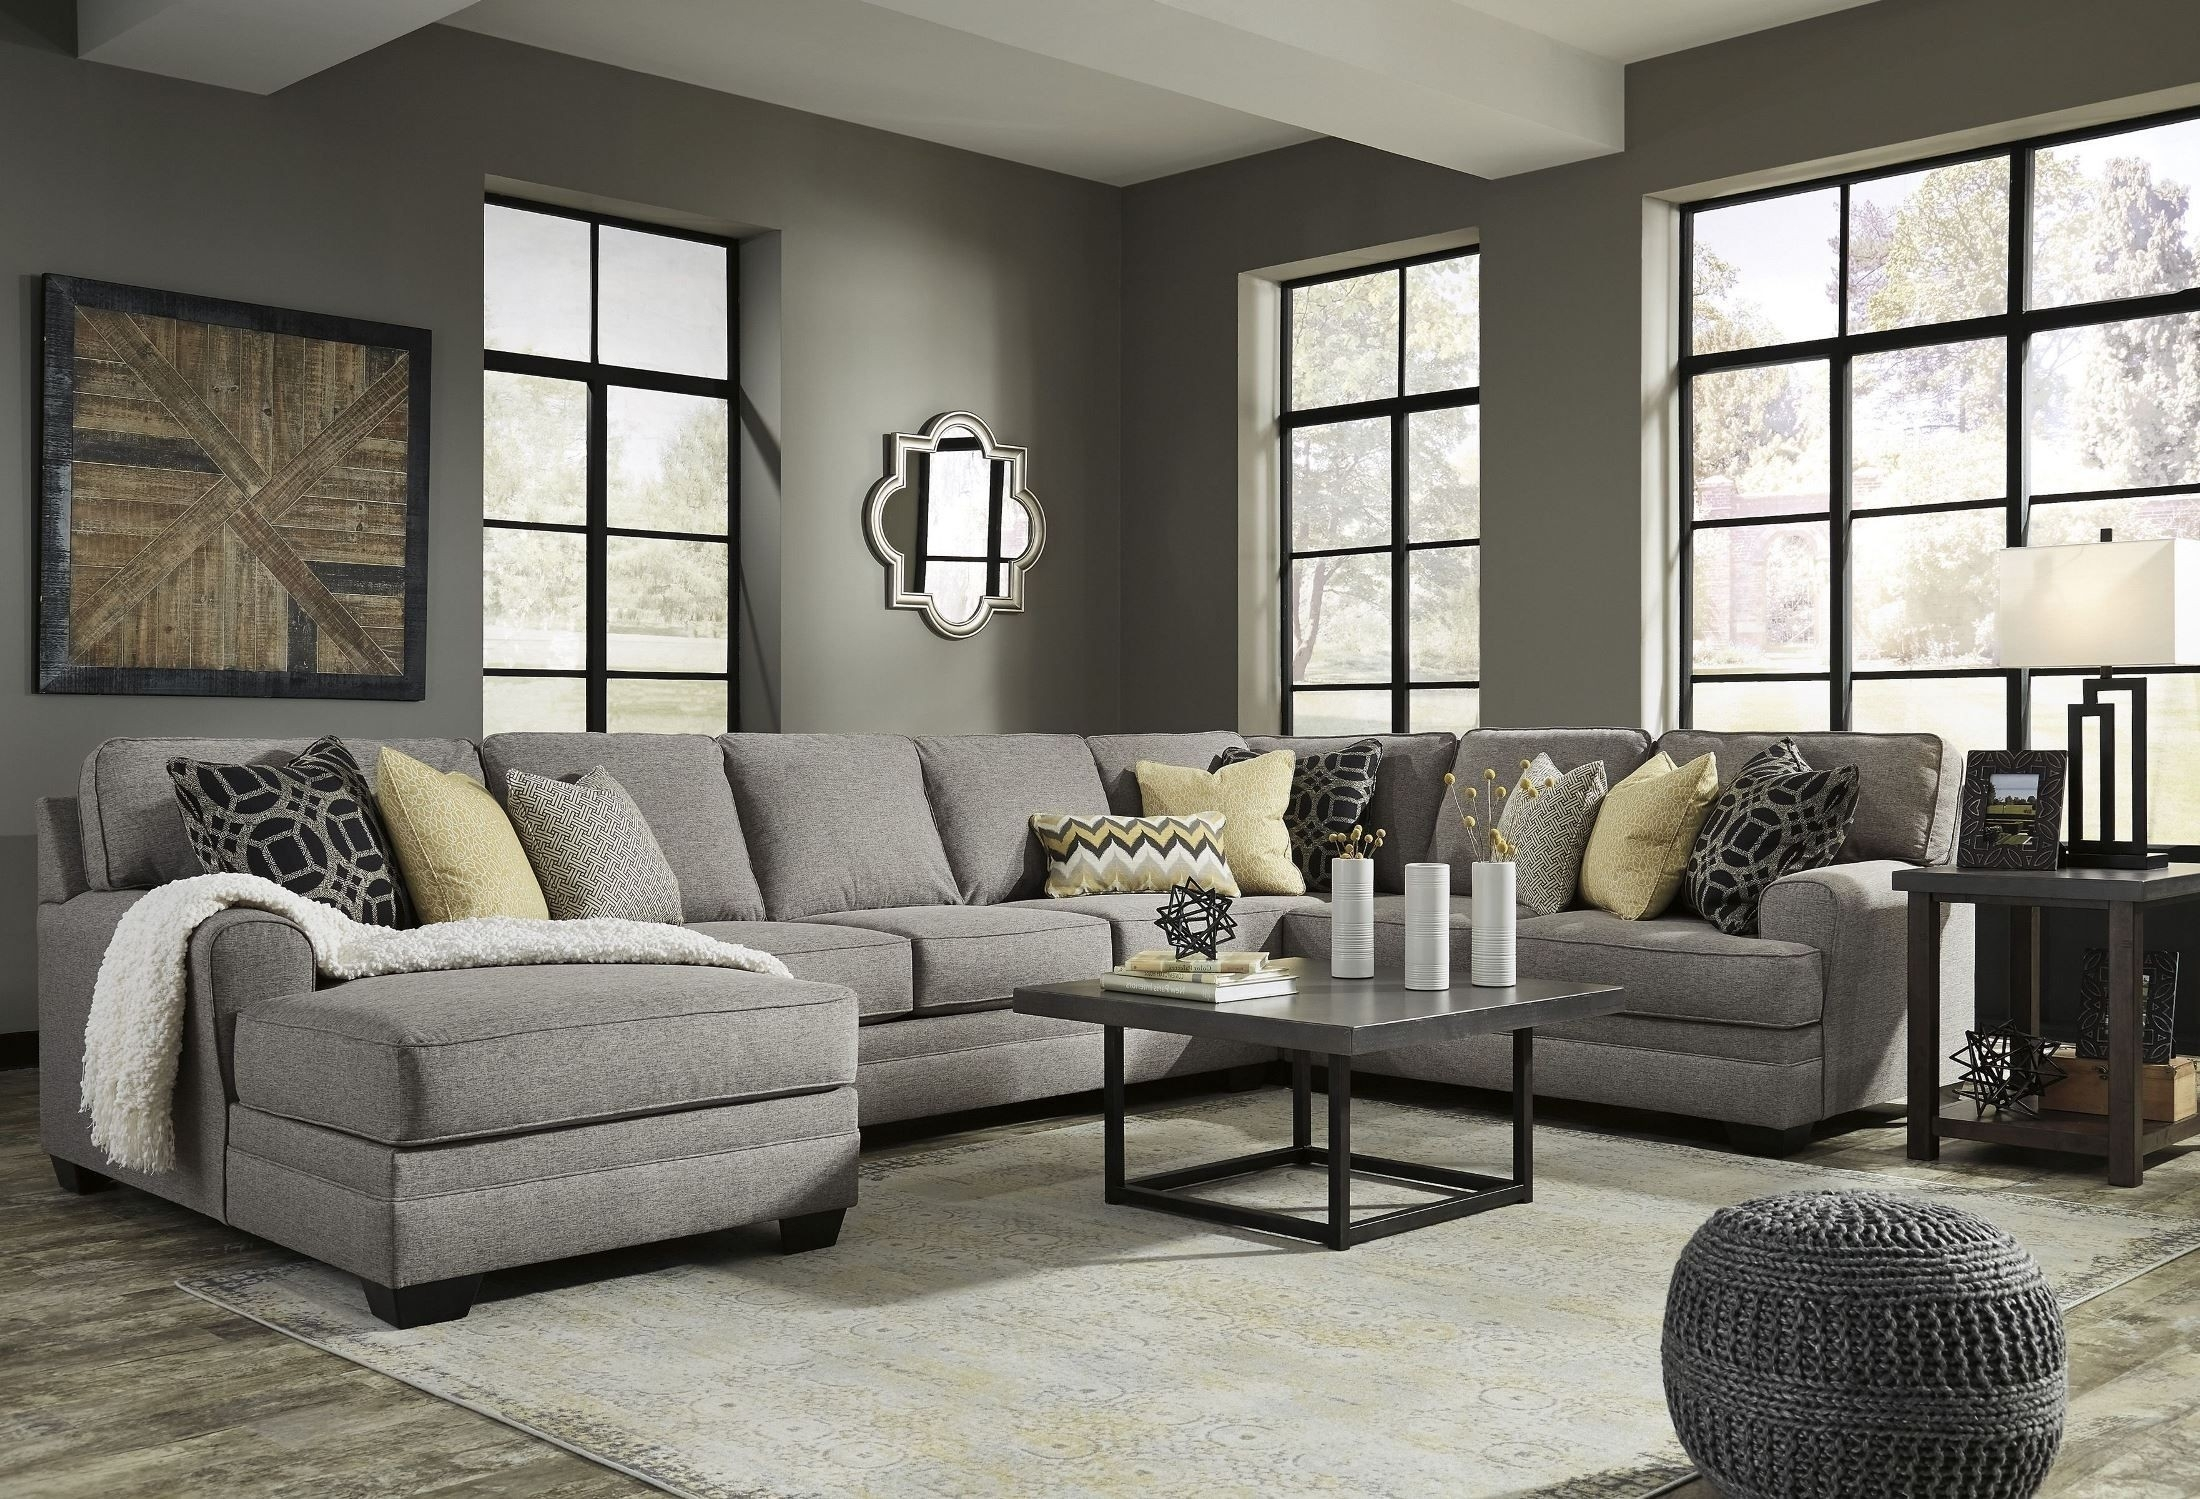 Laf Sectional – Le Siecle Within Avery 2 Piece Sectionals With Raf Armless Chaise (Image 17 of 25)